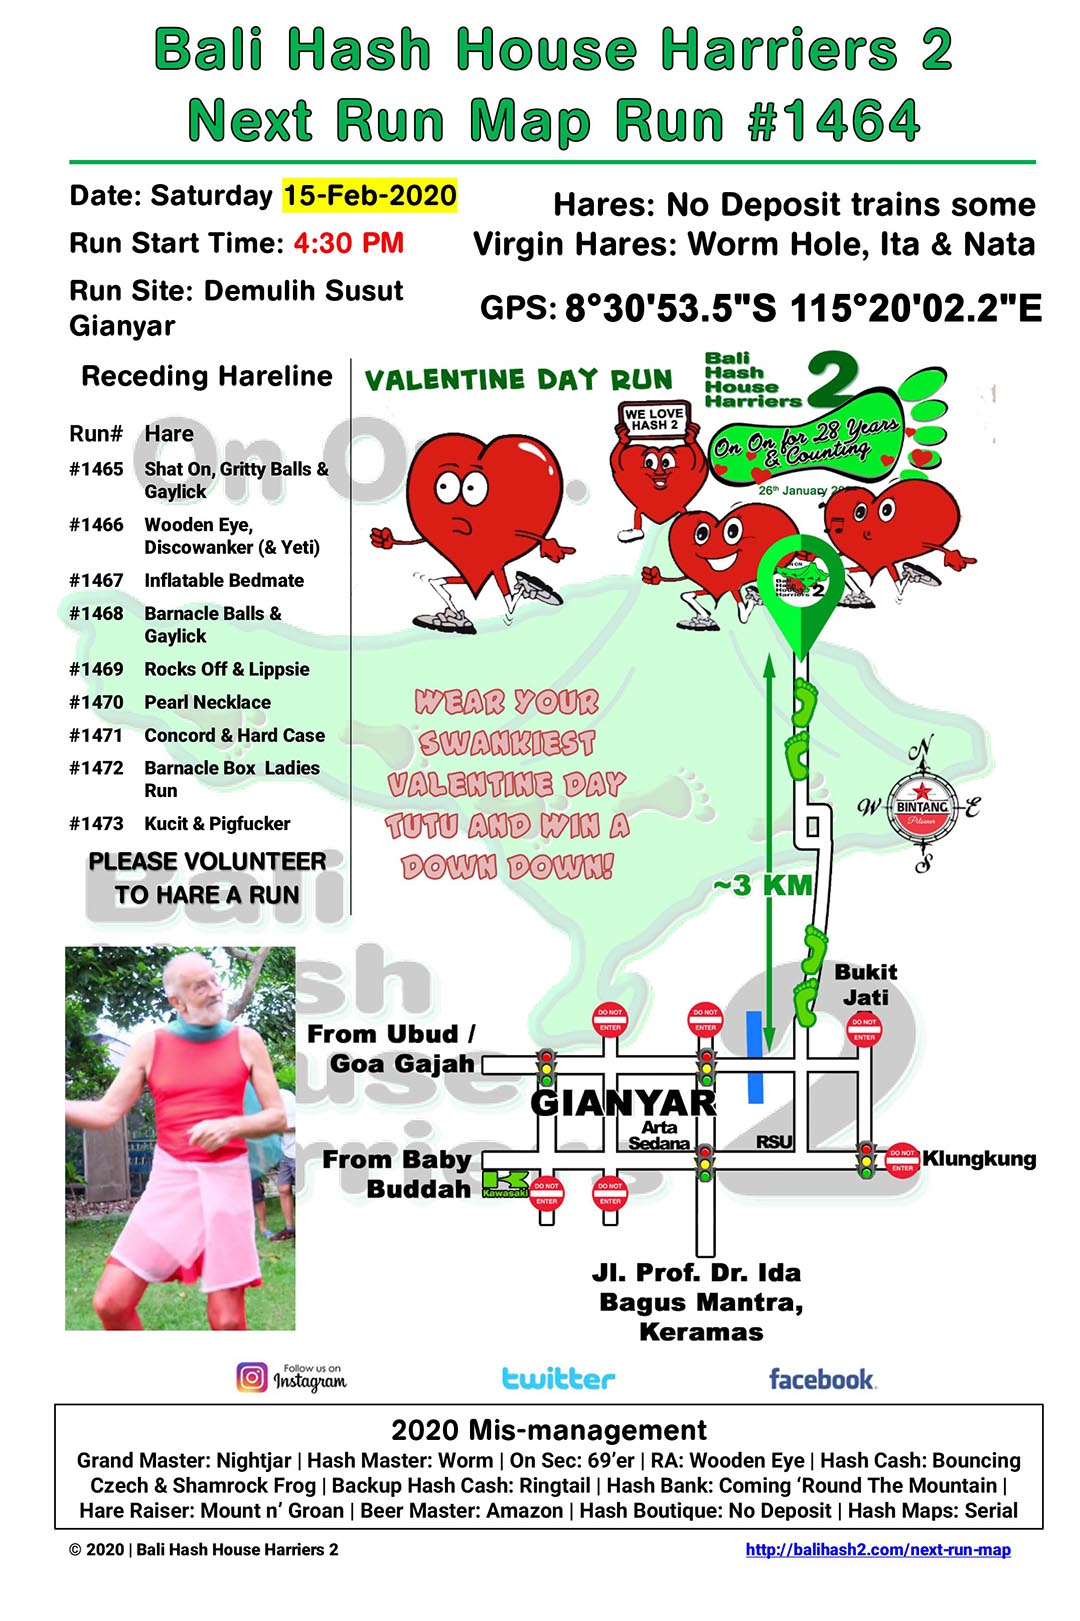 Bali Hash 2 Next Run Map #1464 Demulih Susut Gianyar Valentine Day Run